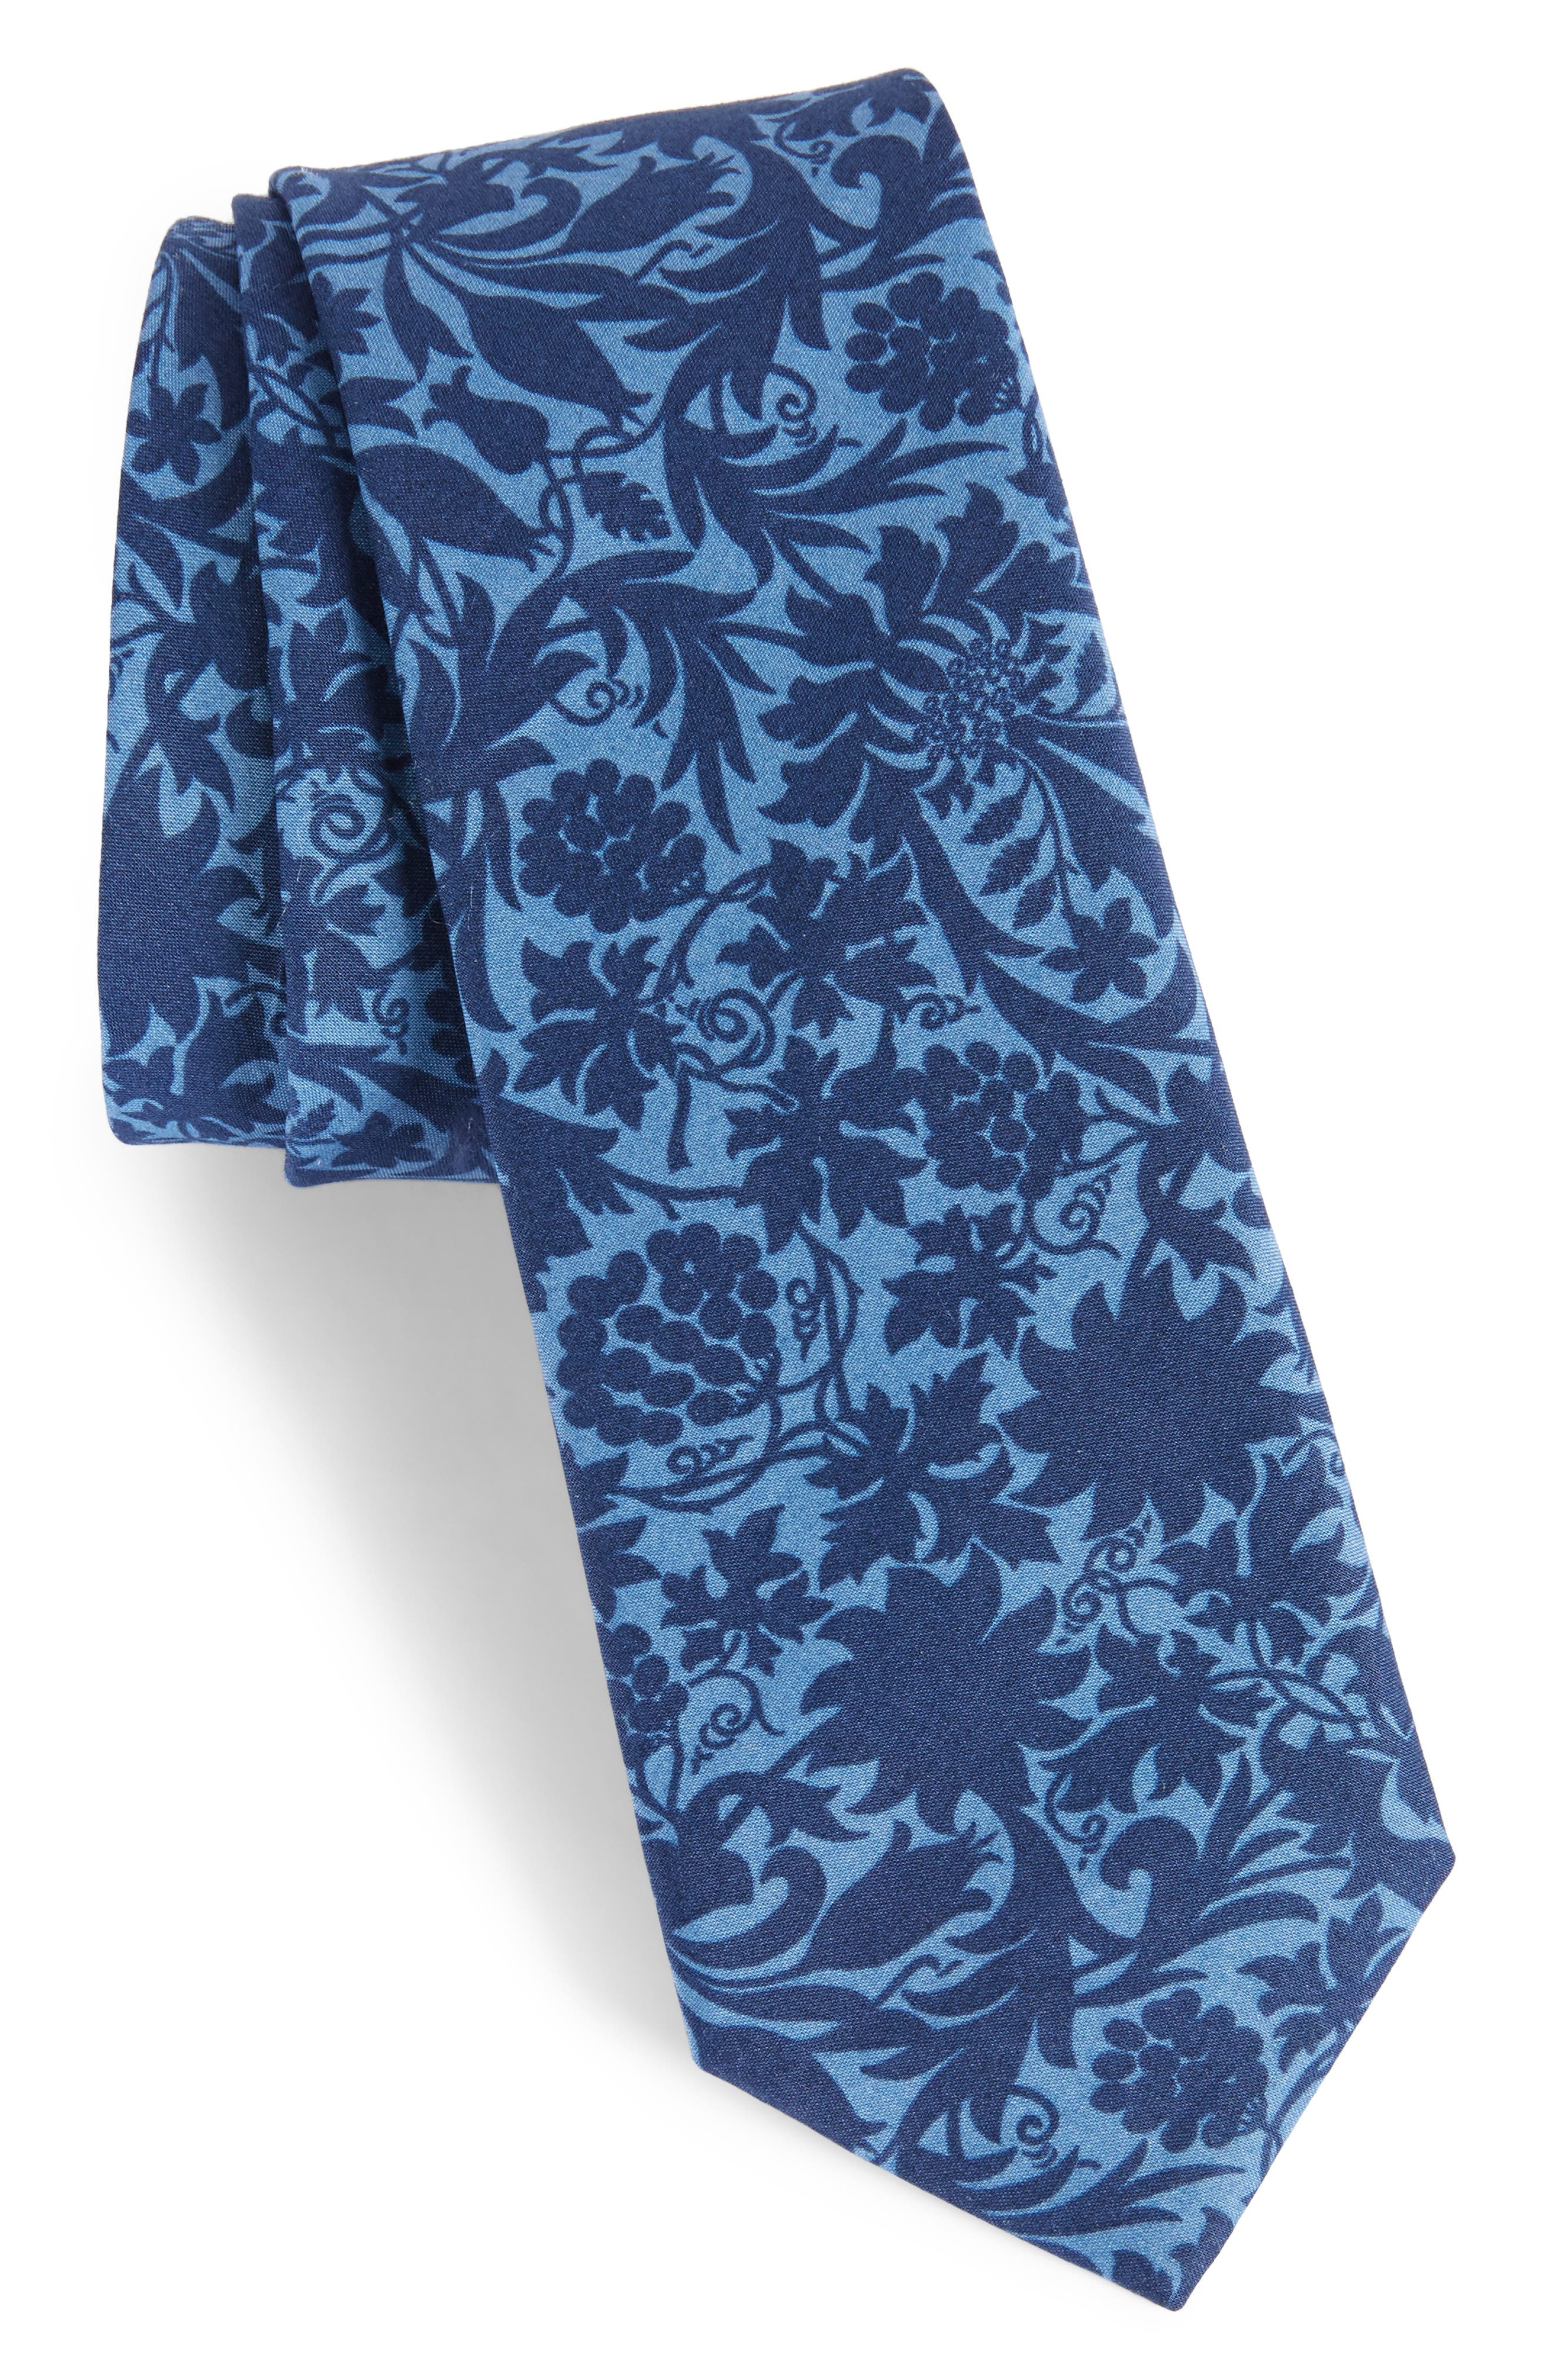 Alternate Image 1 Selected - Paul Smith Floral Cotton Skinny Tie